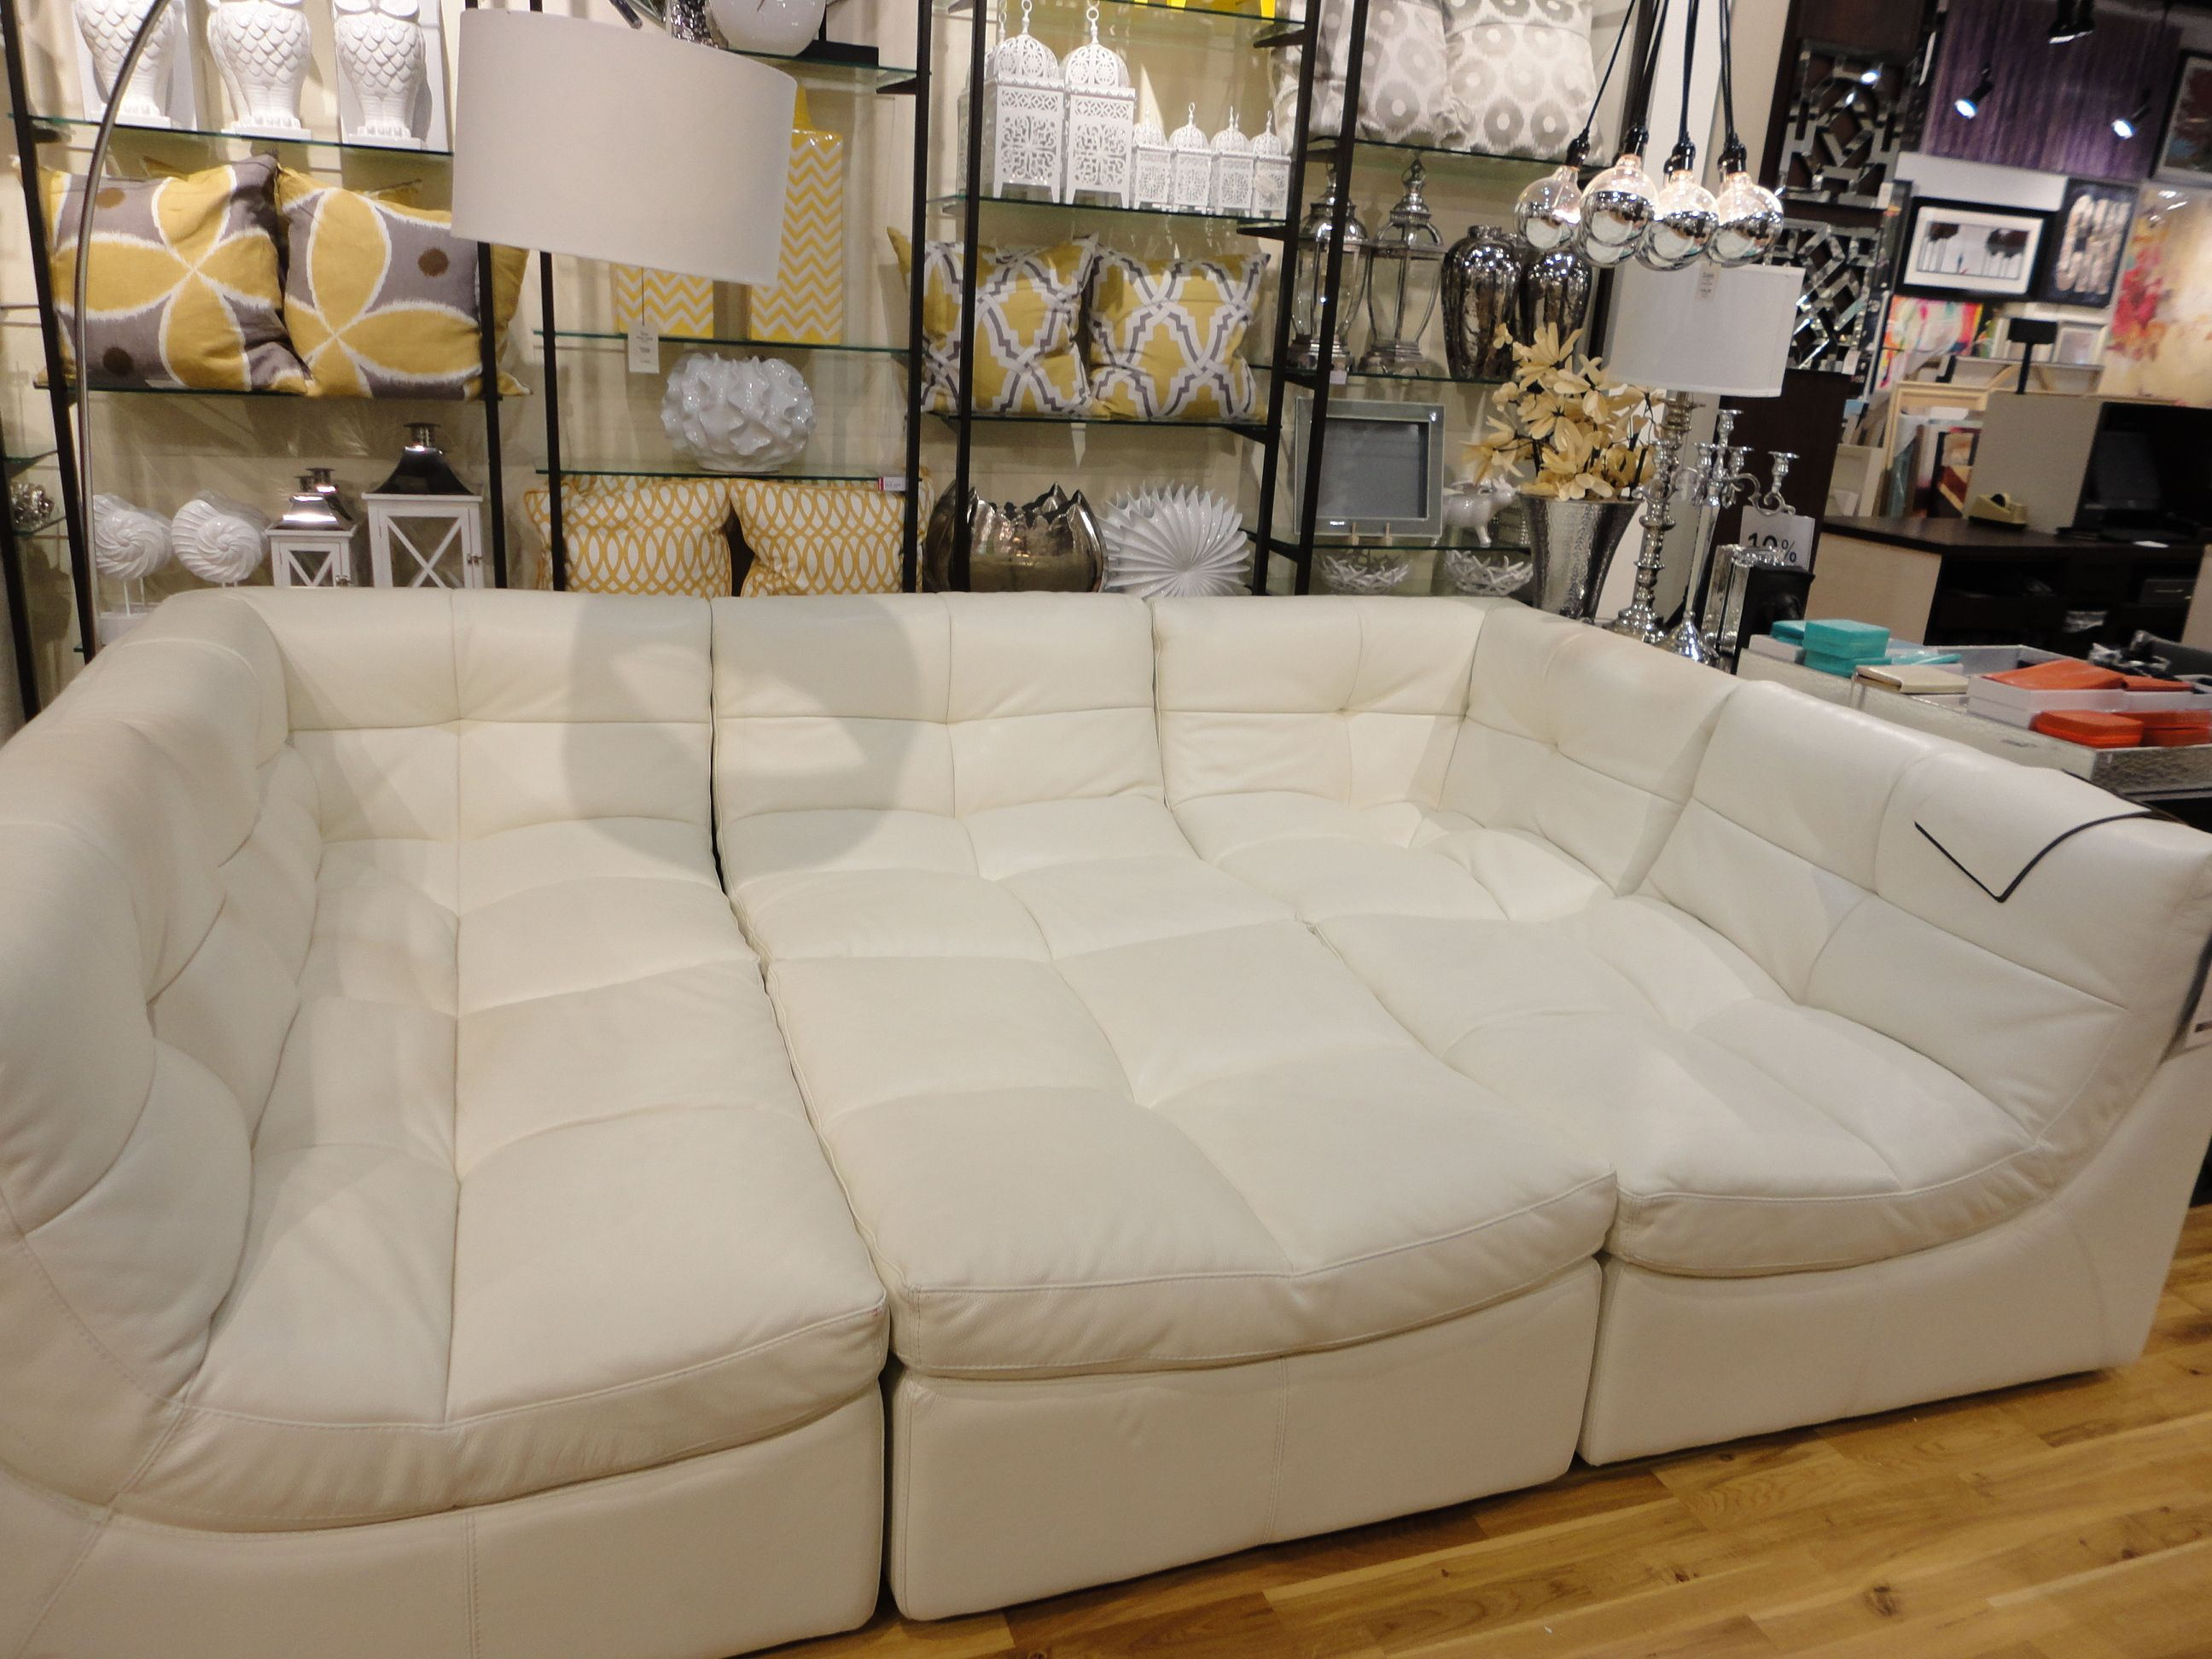 This Couch Is Super Cool Looks Like A Bed But Those Are All